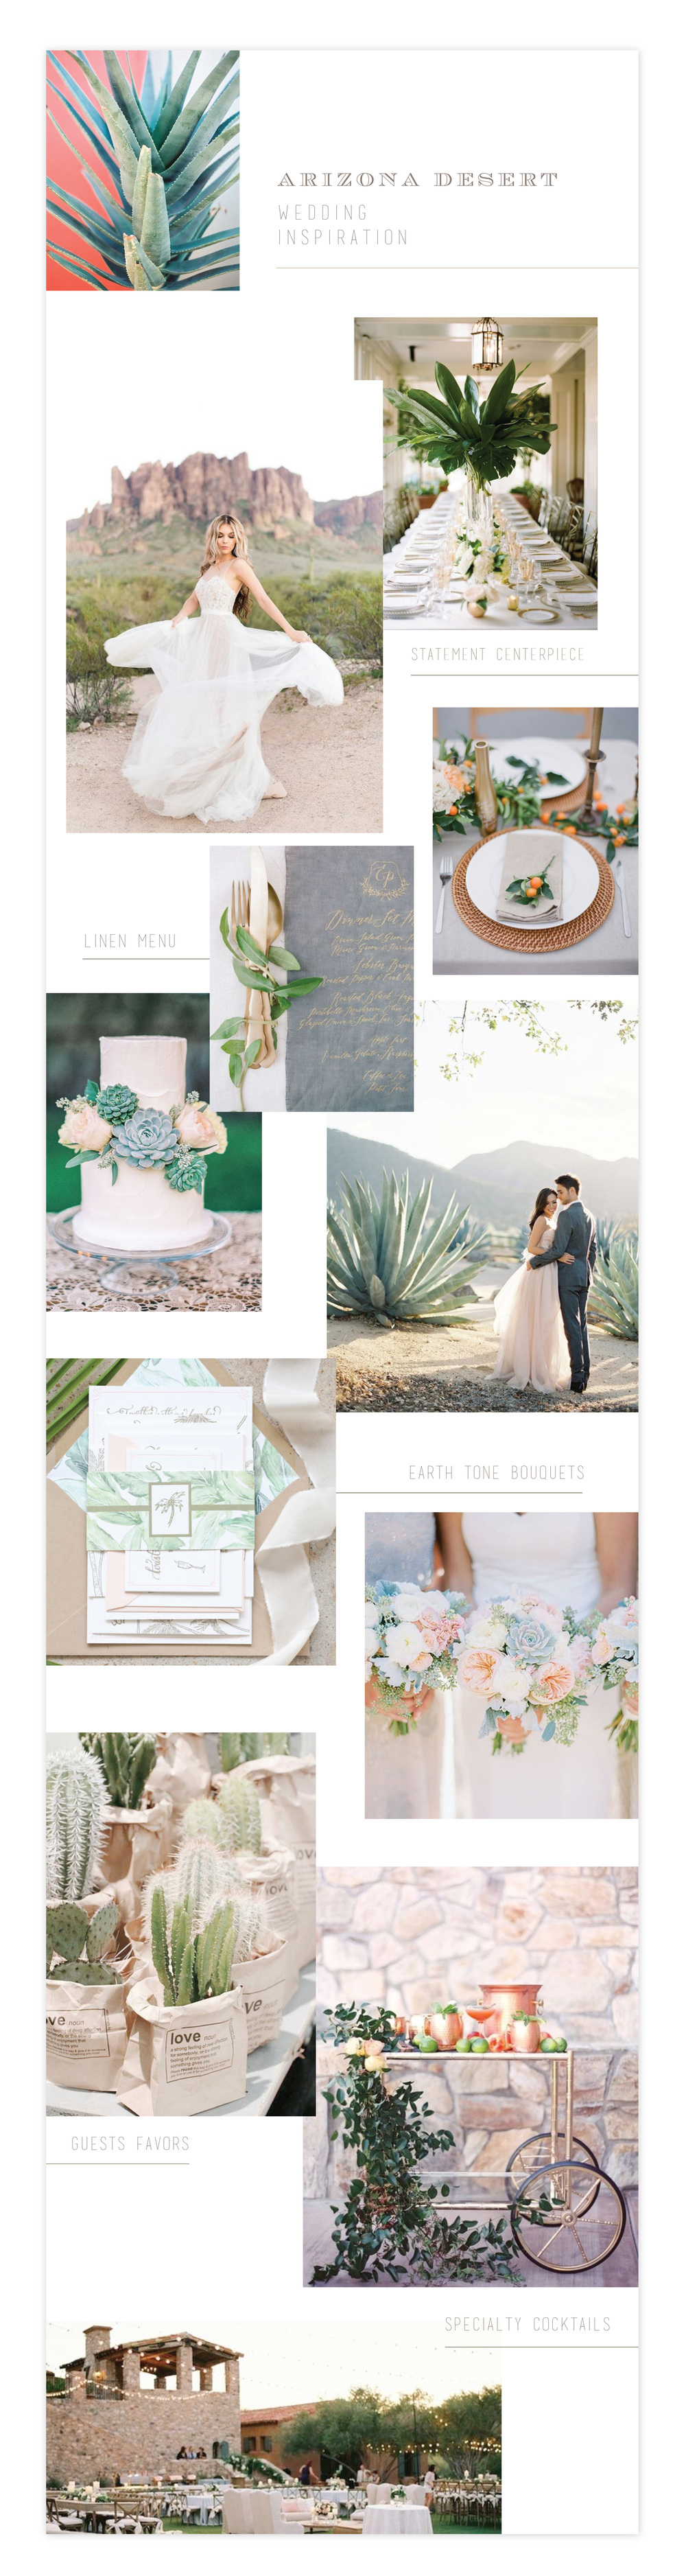 Arizona Desert Wedding Inpiration